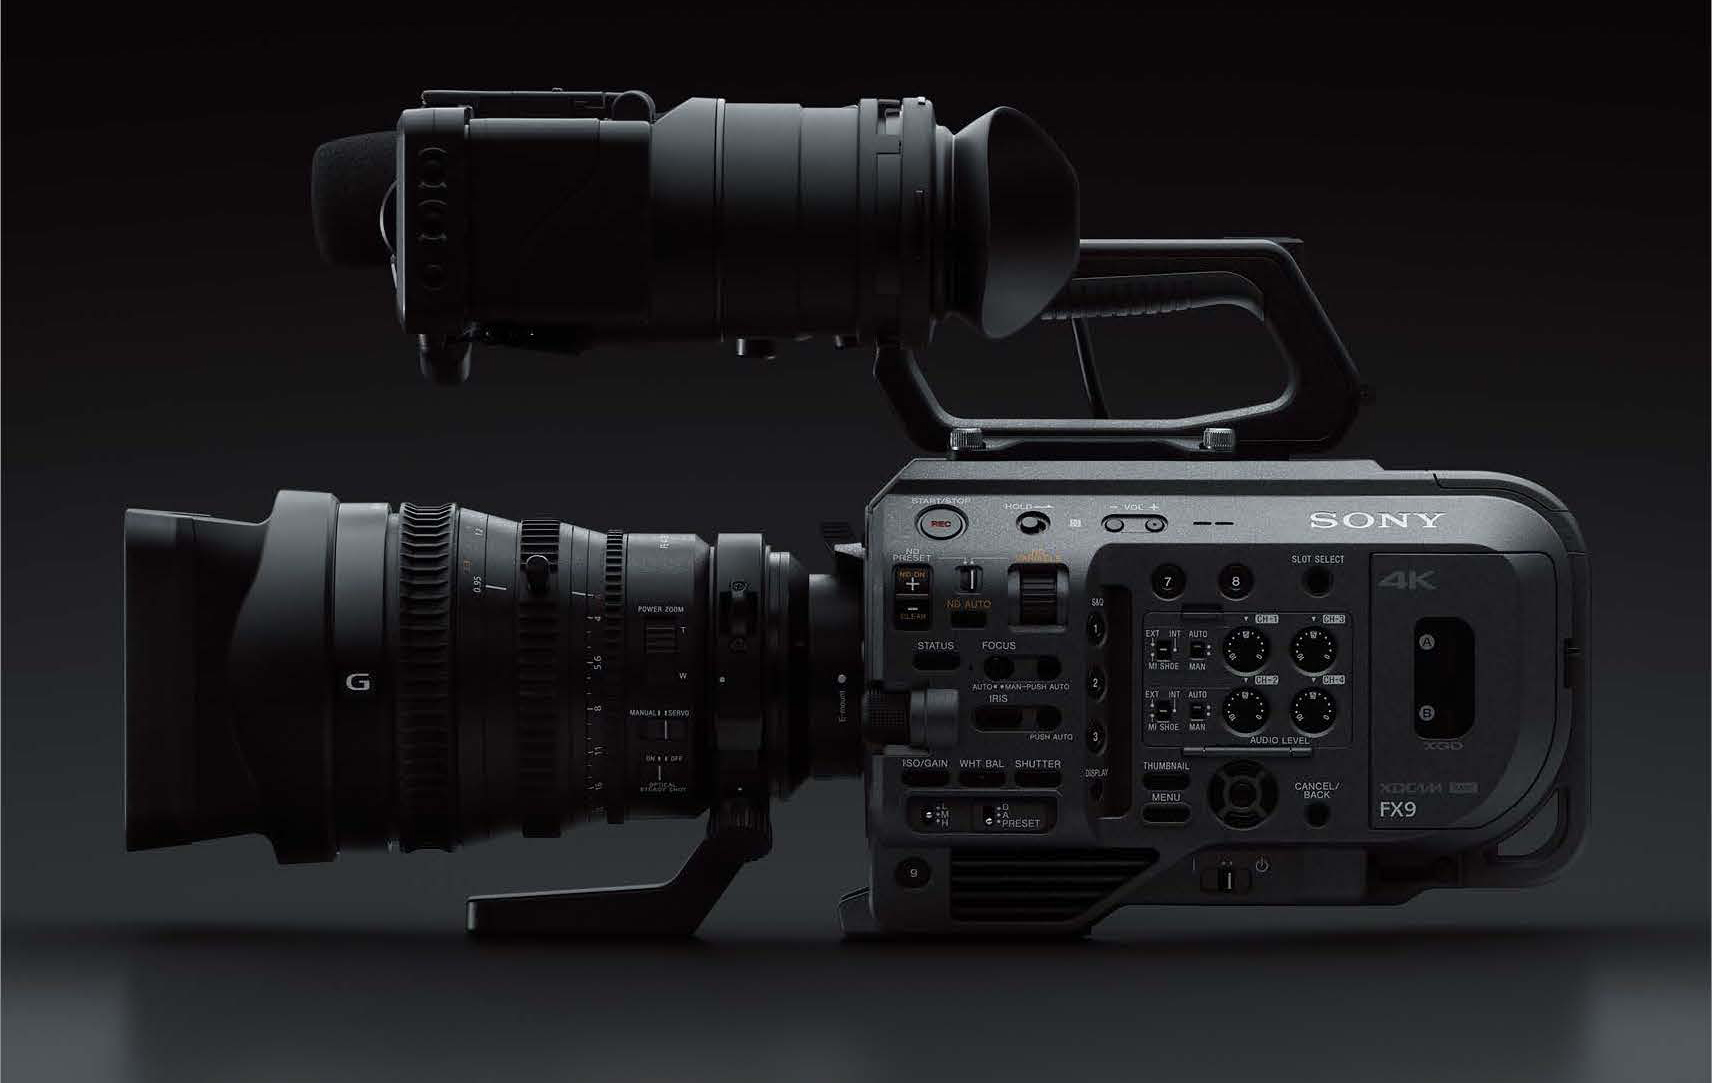 The Exciting New Sony PXW-FX9 Has Landed!